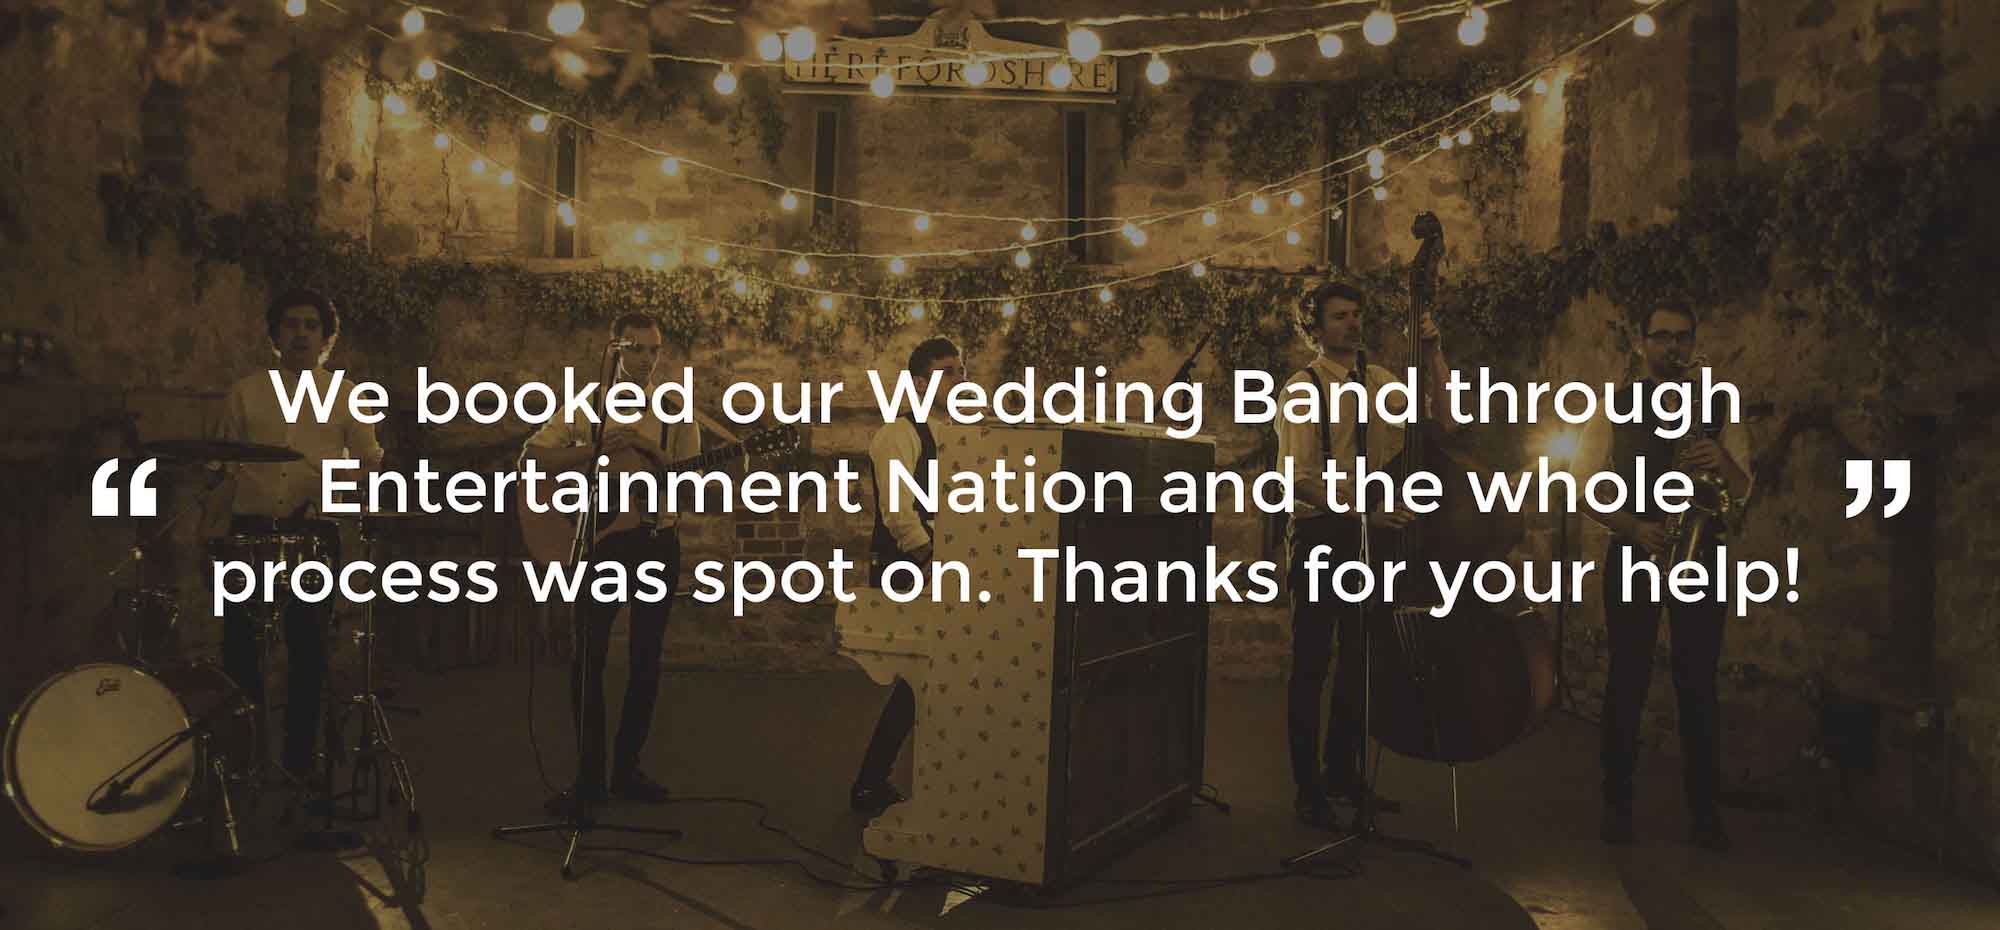 Client Review of a Wedding Band Lincolnshire